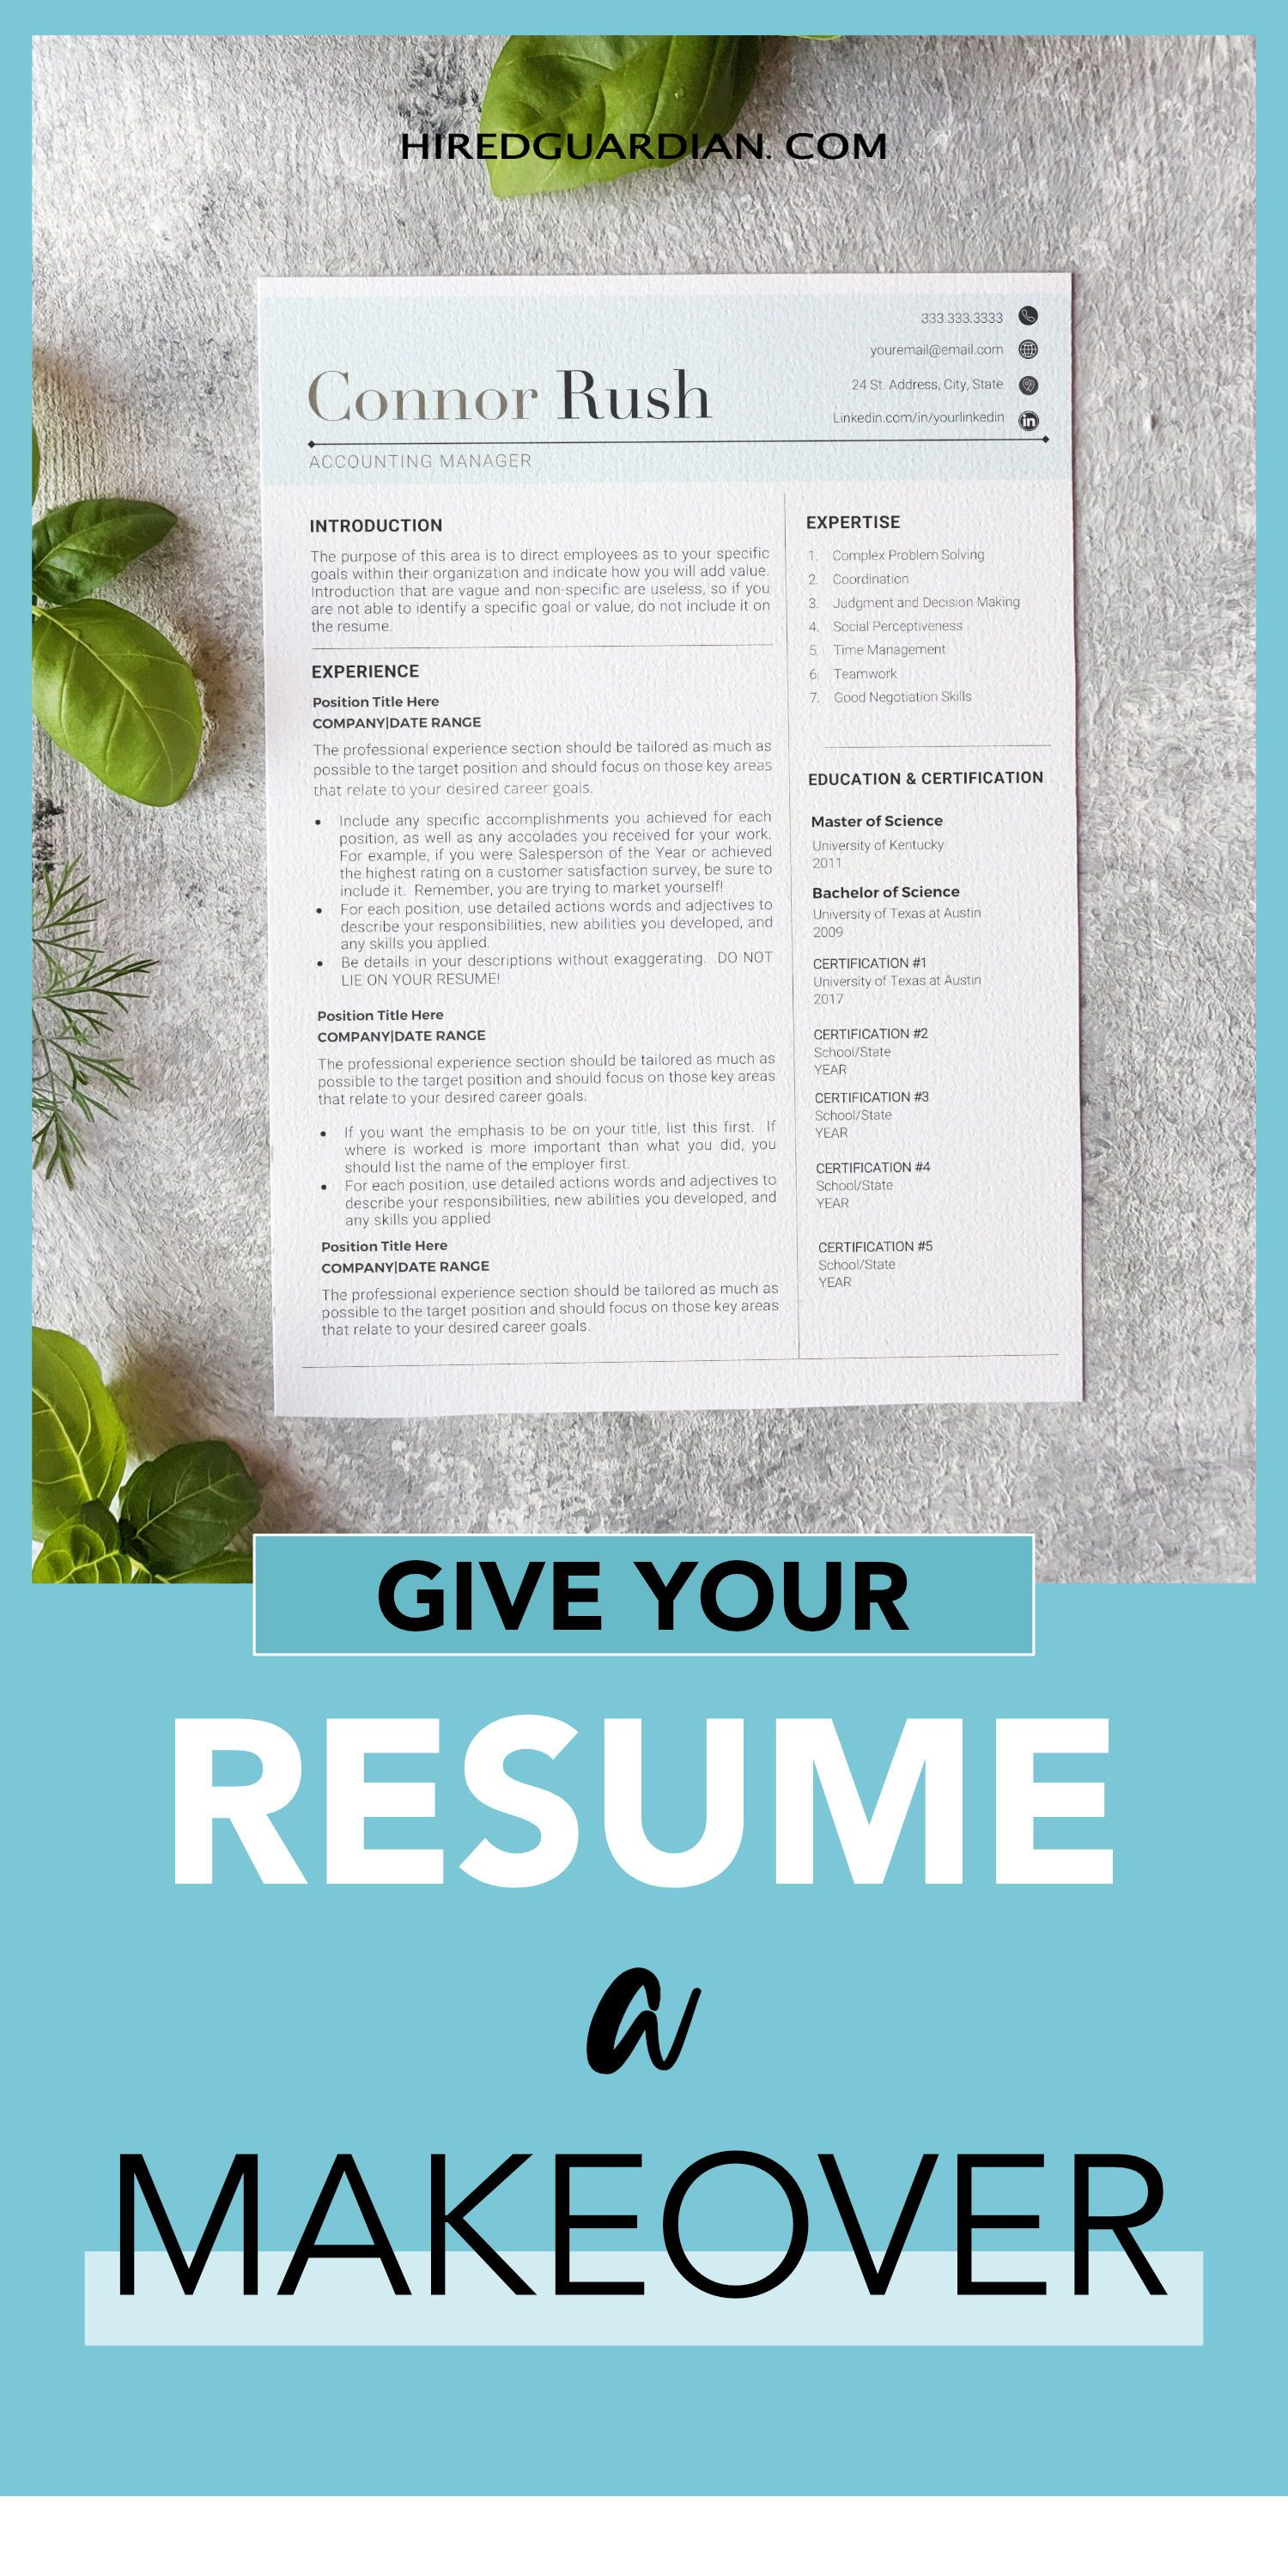 Professional Resume Template Resume Template For Word Resume And Cover Letter Template Lebenslauf Vorlage Modern Resume Template Word Resume Template Word Resume Template Professional Resume Examples